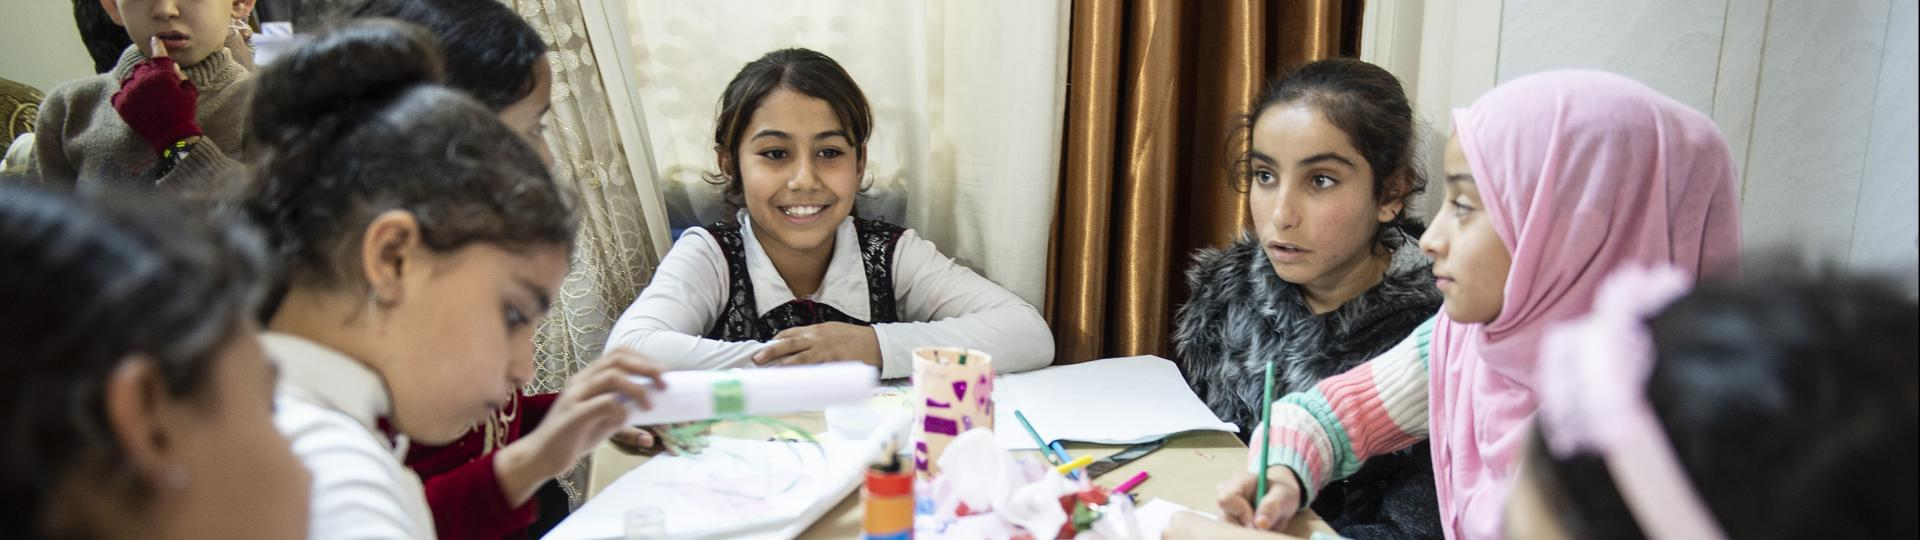 Give a Christmas present to Amira and her friends at the child friendly spaces in war-torn Iraq!